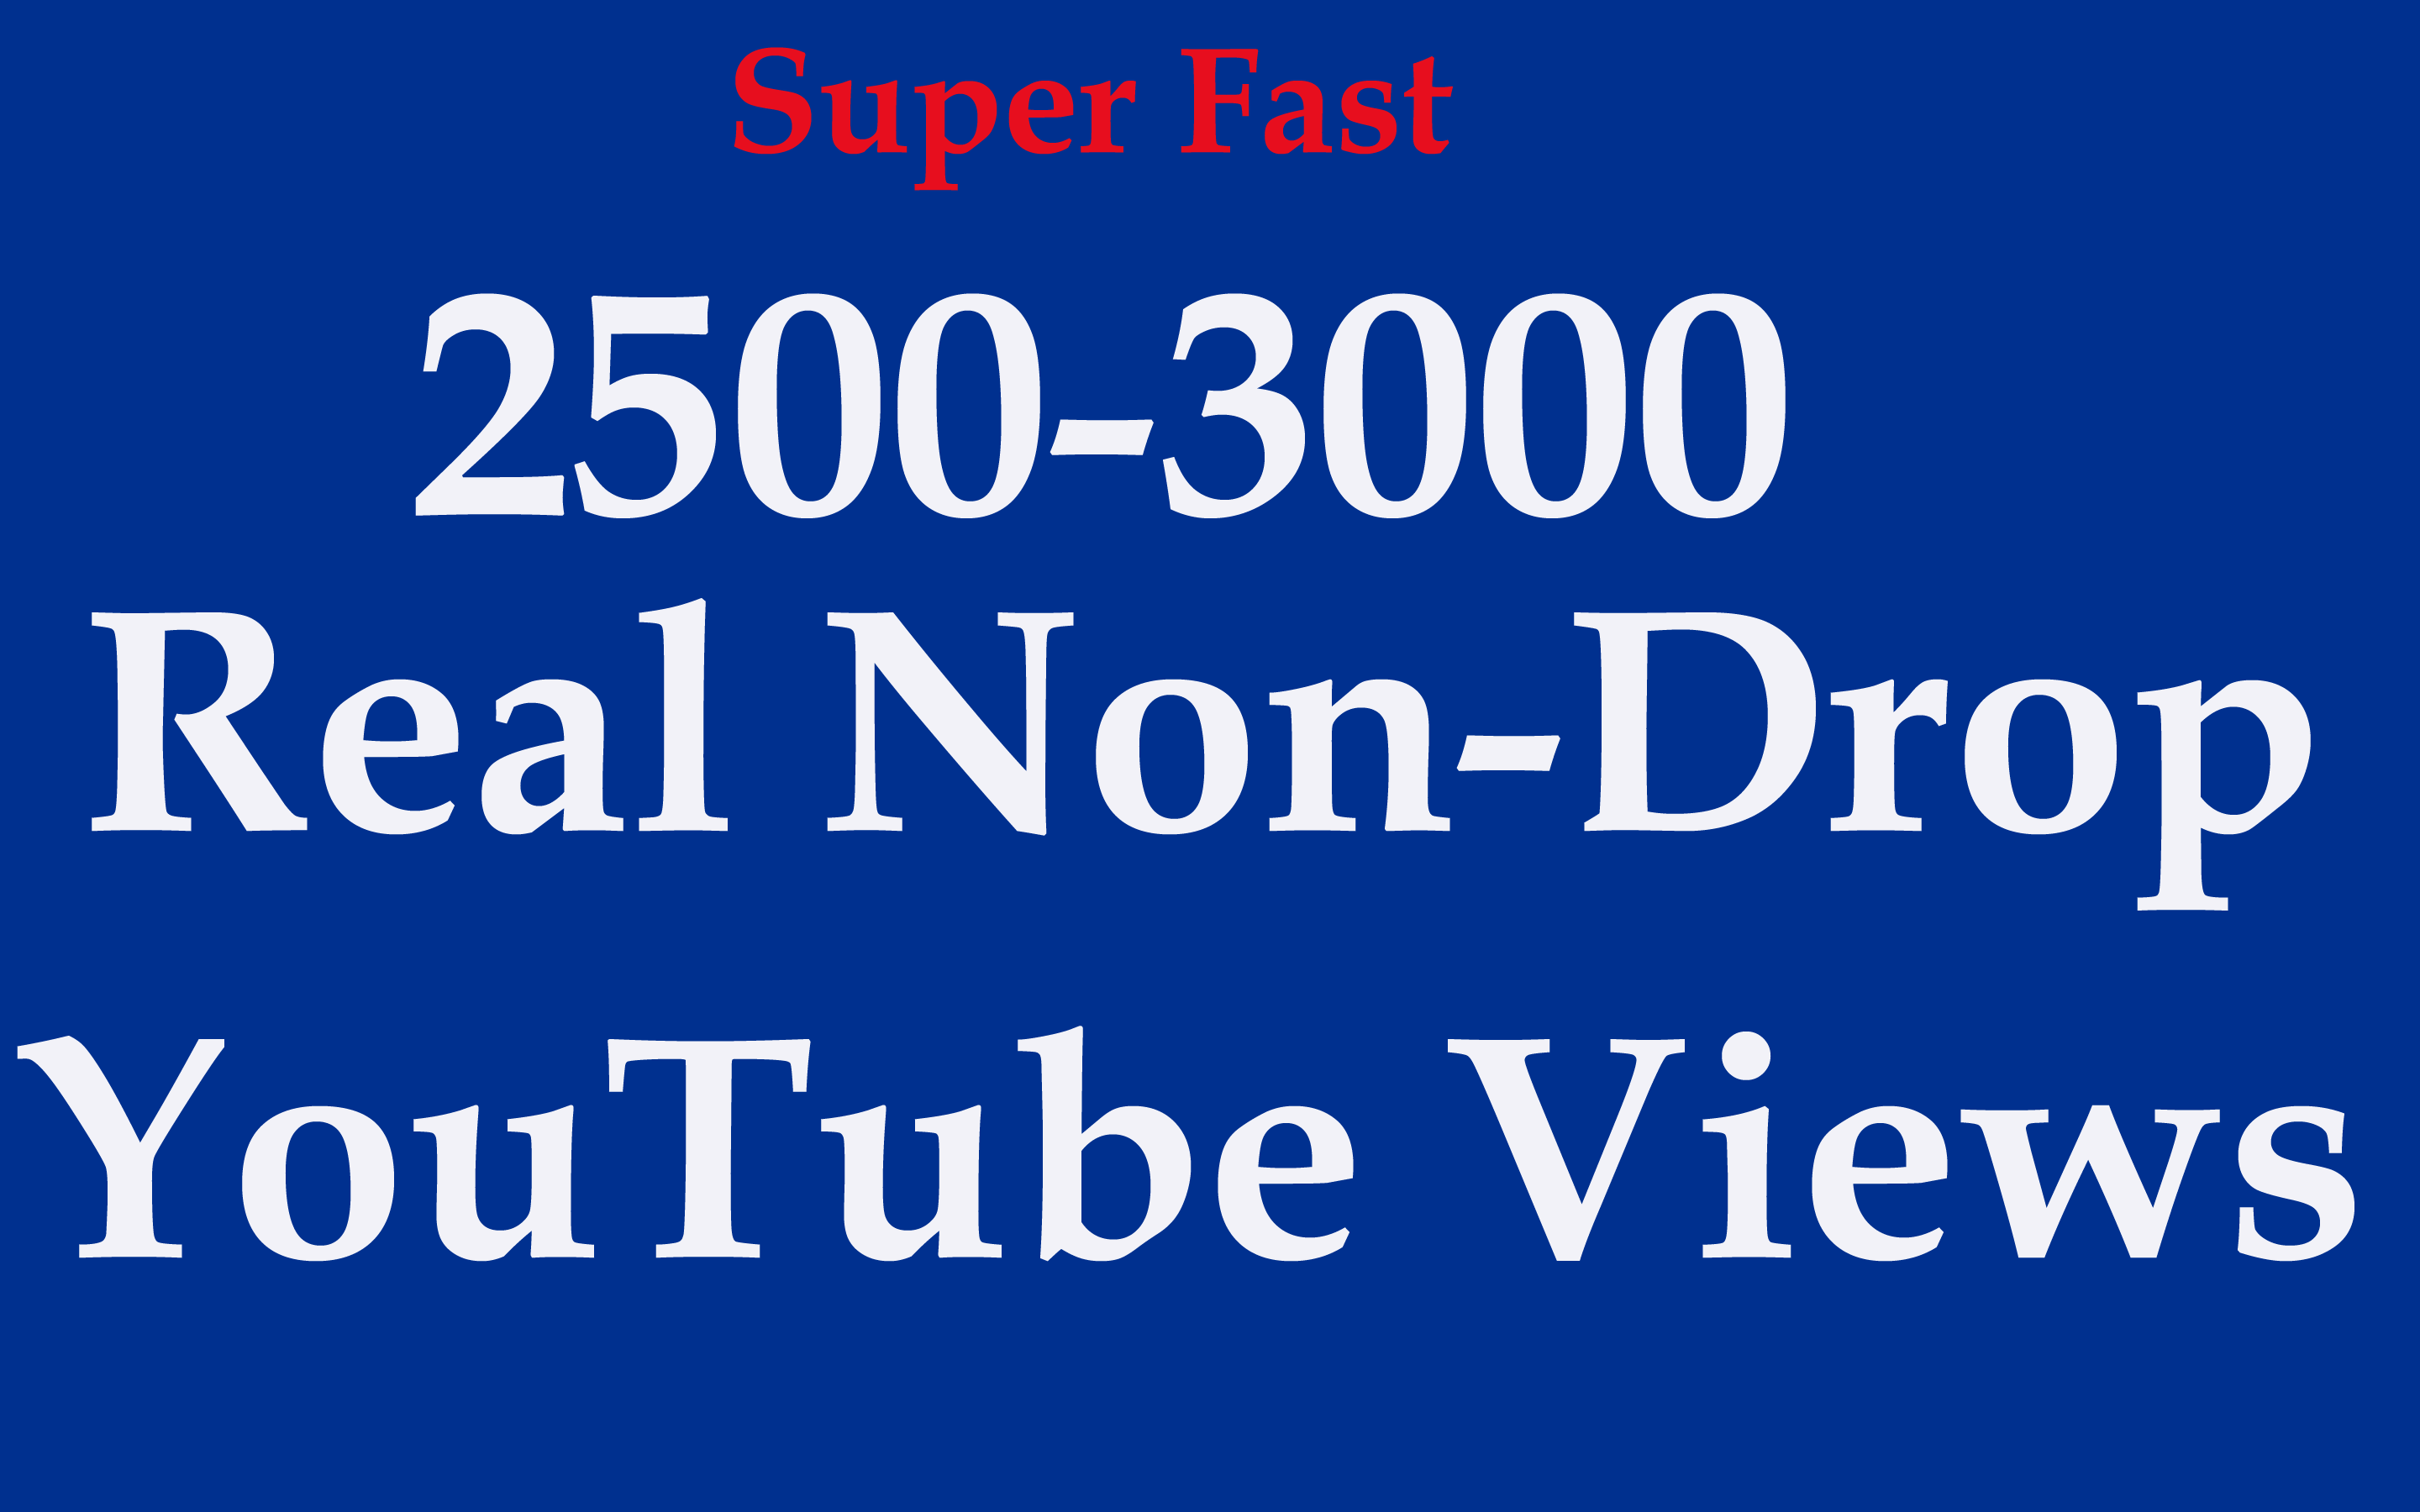 2500 Non-Drop Safe Views wihtin 24 hours